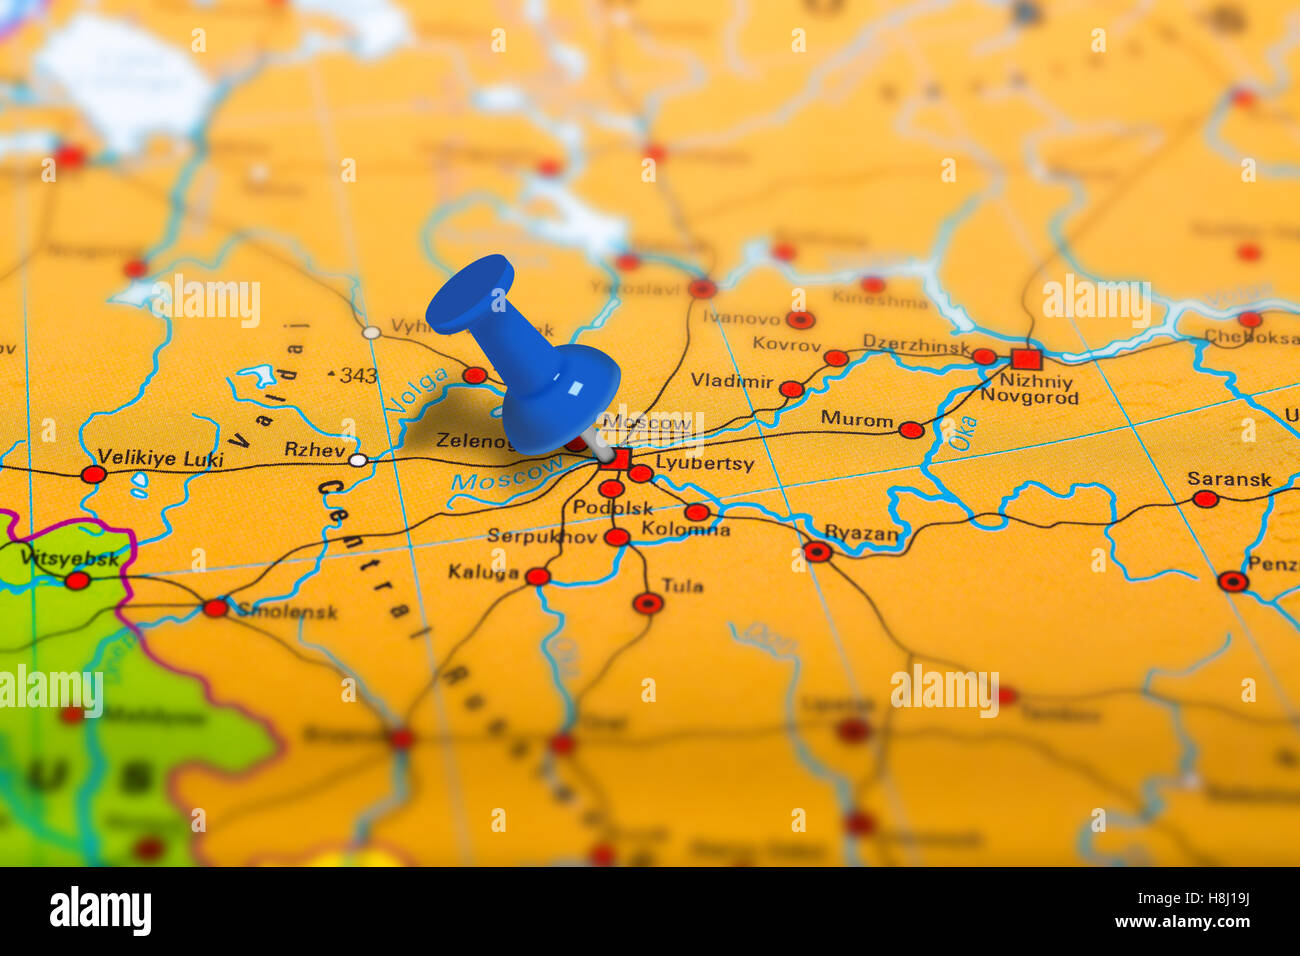 Moscow Russia map Stock Photo: 125786014 - Alamy